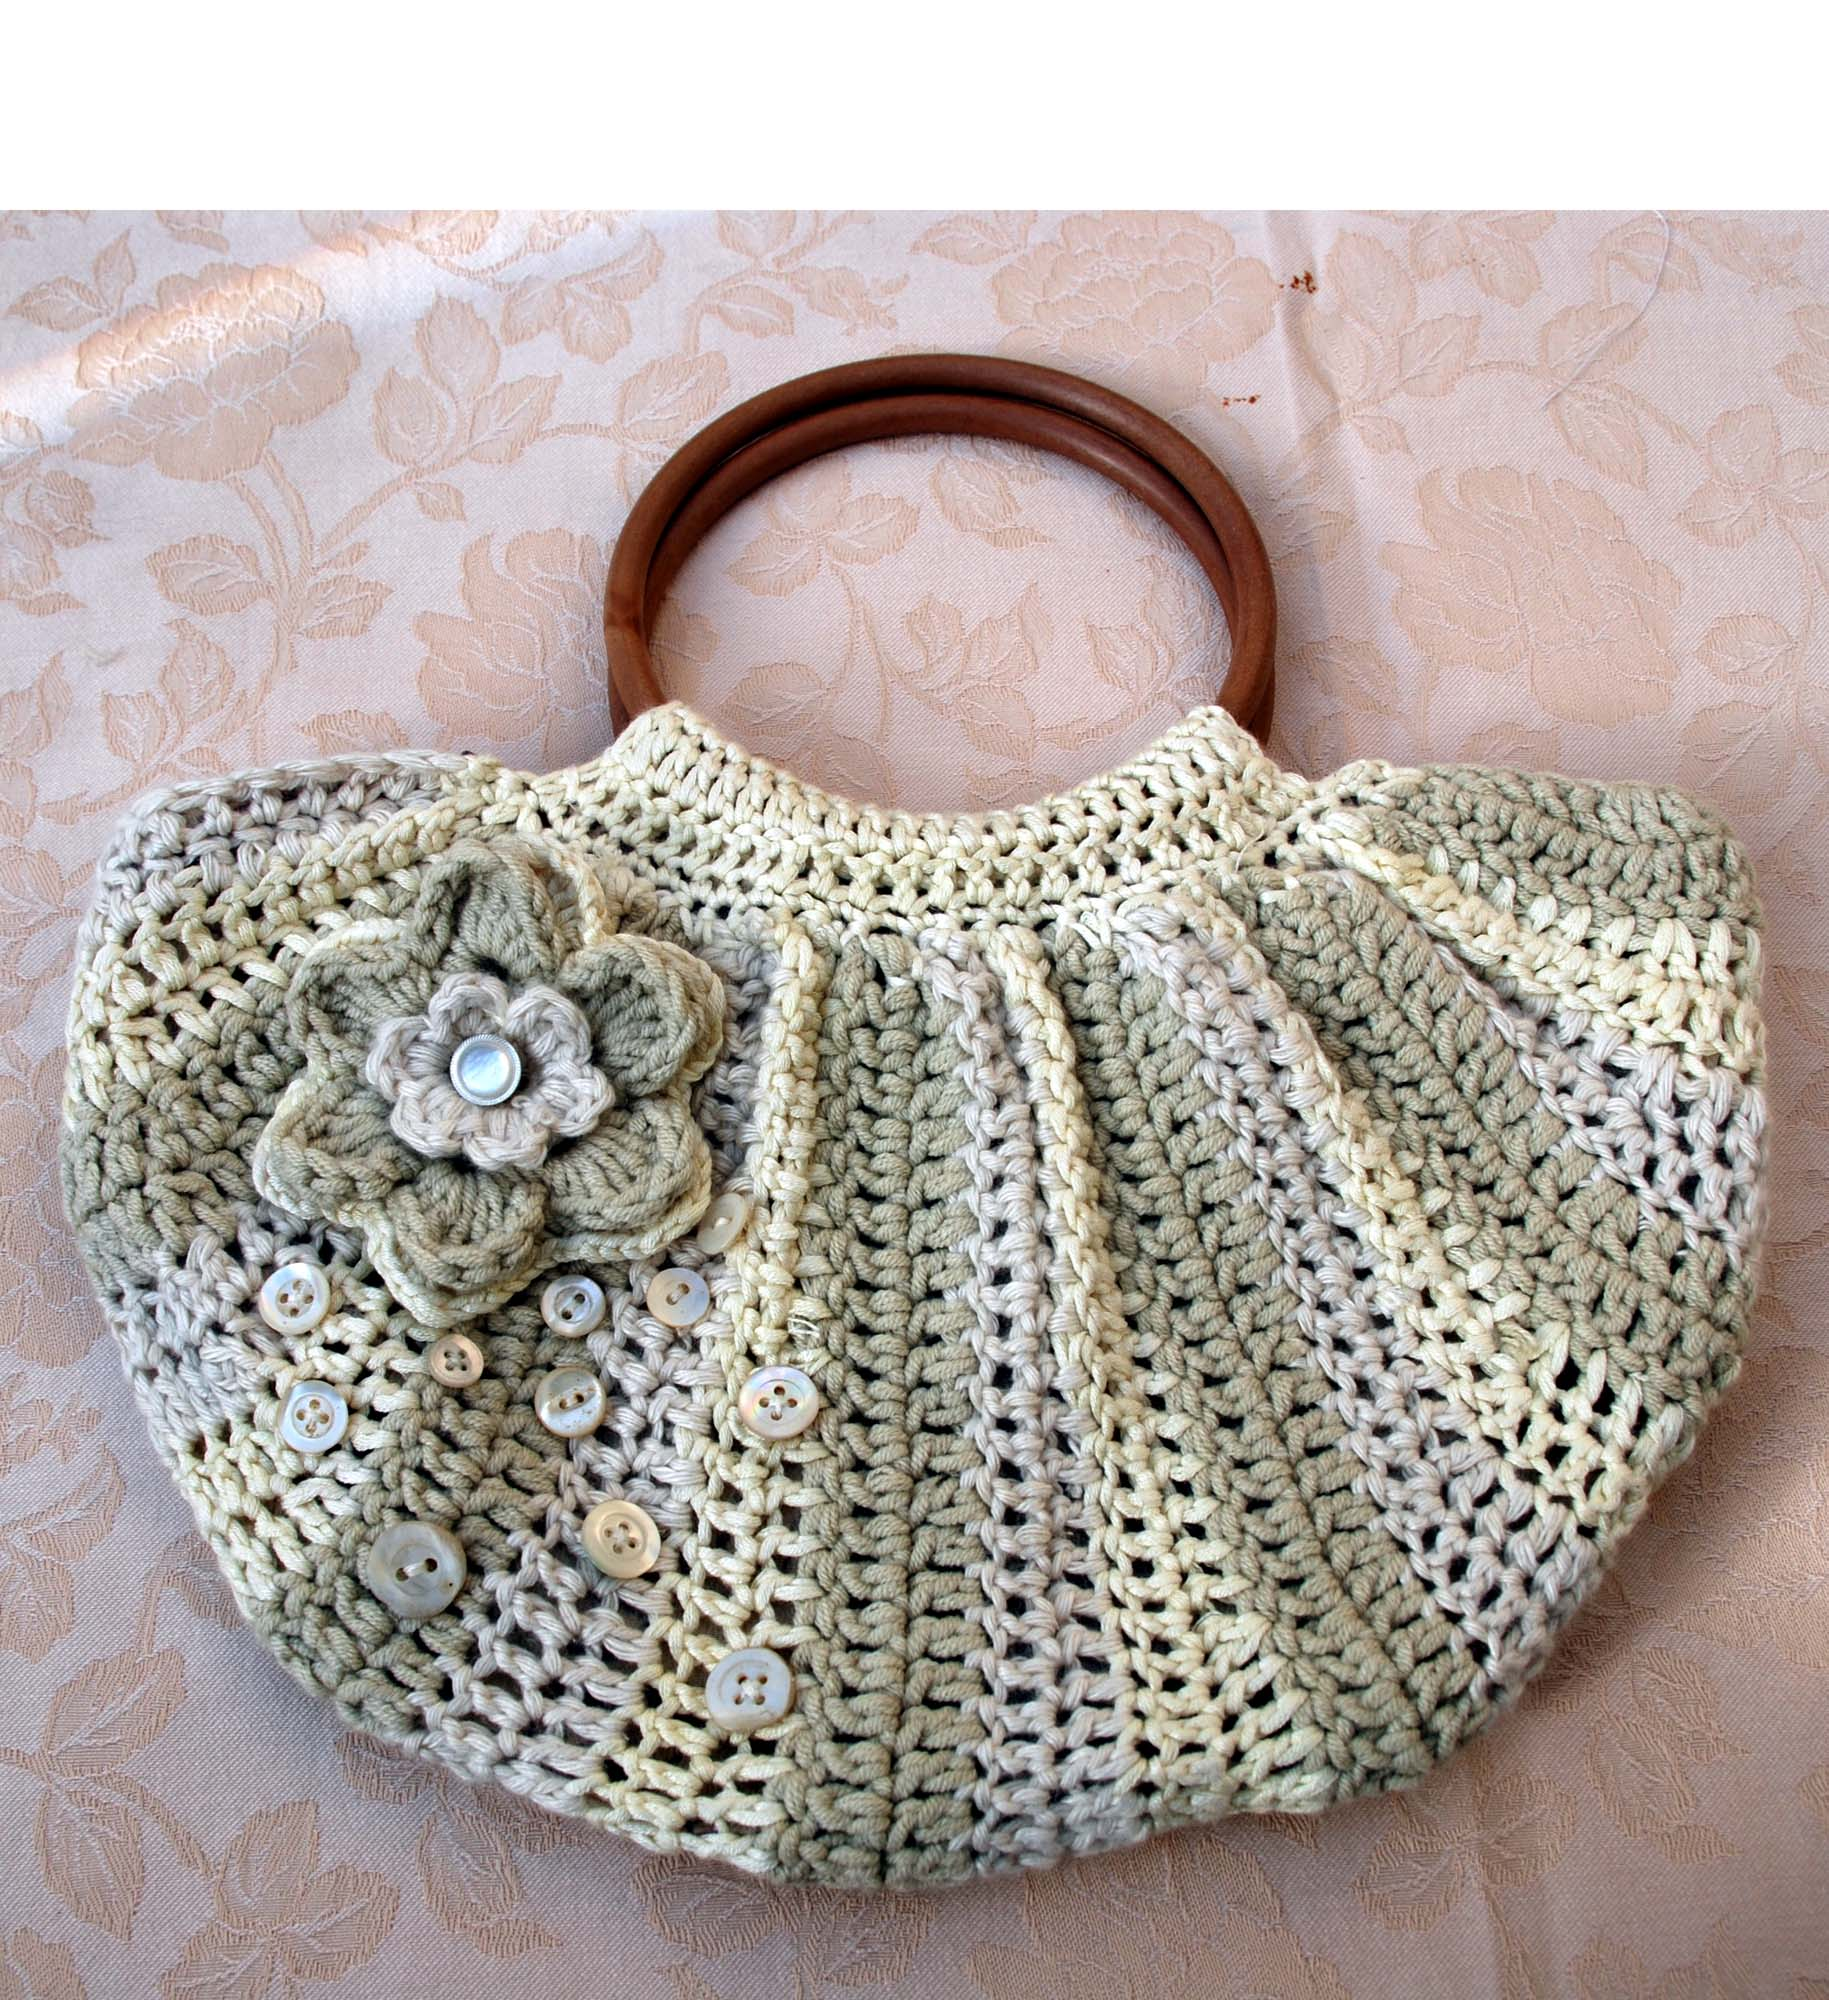 Crochet Purse : Pretty crochet bag with silk and pearl buttons